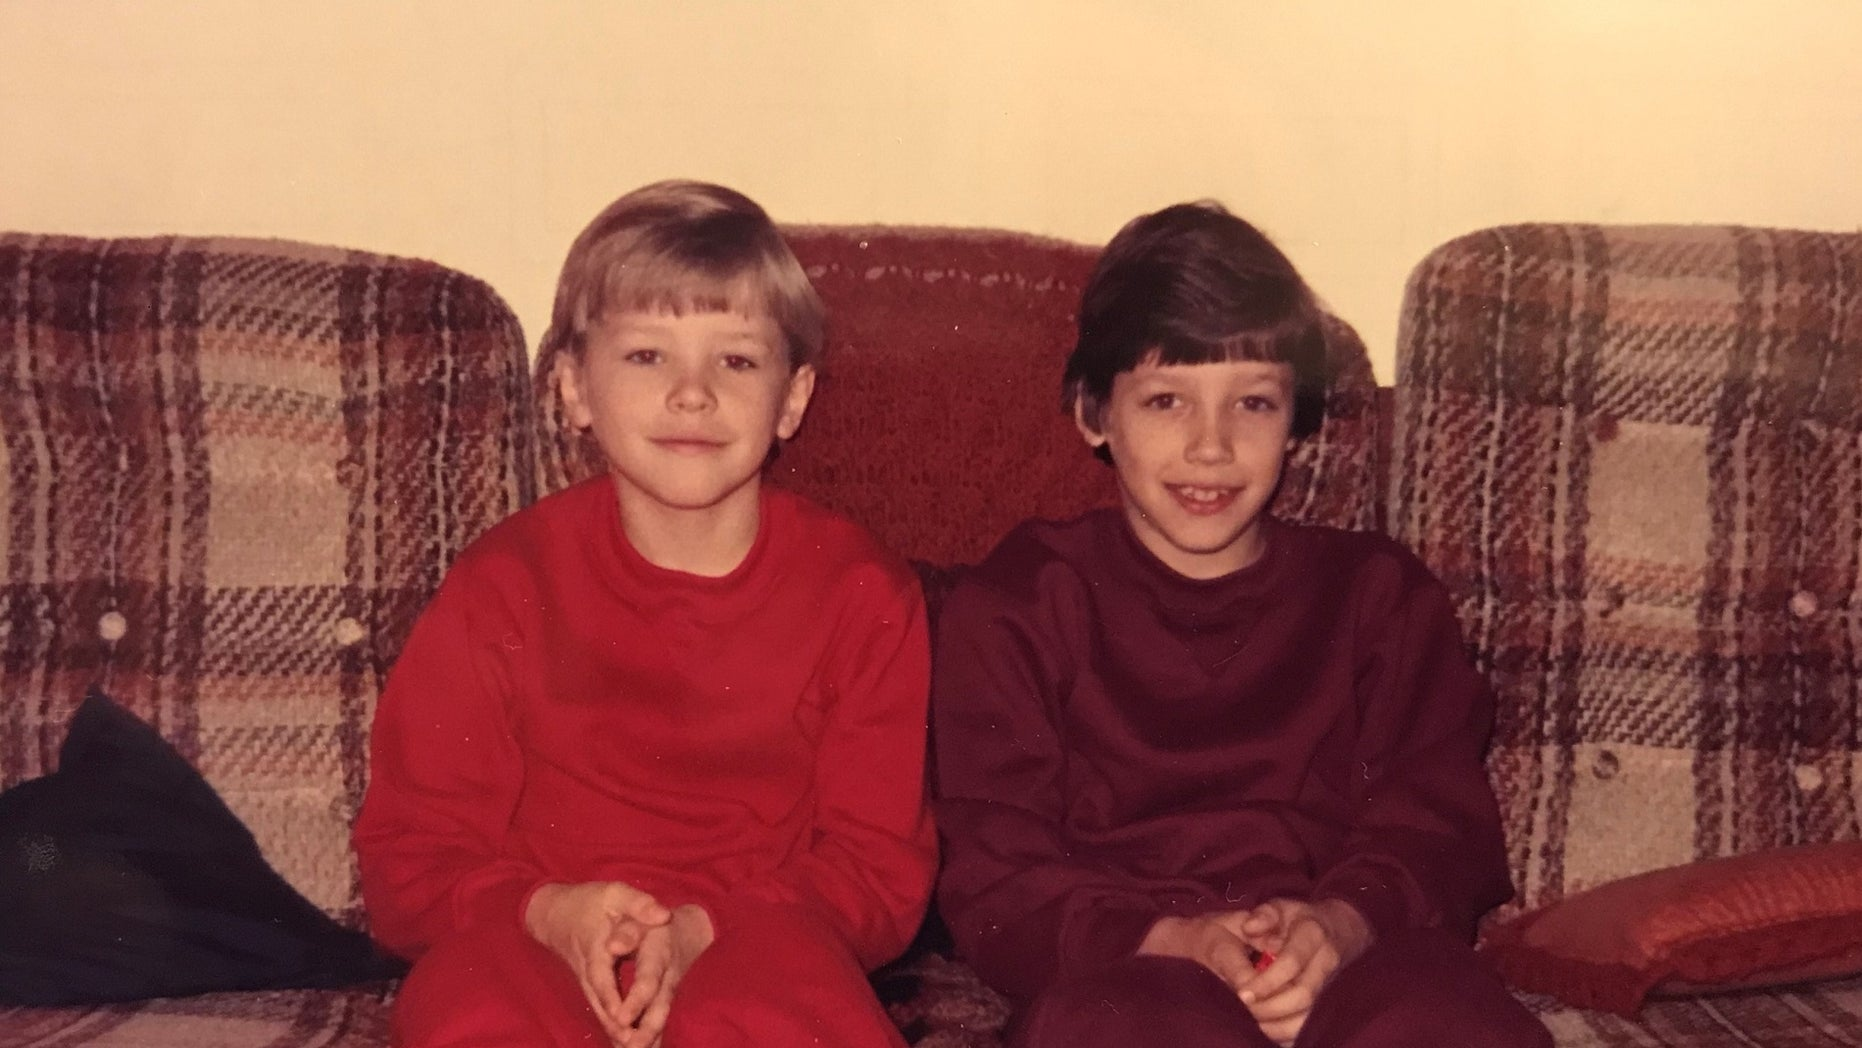 Joshua Rogers and his brother Caleb.